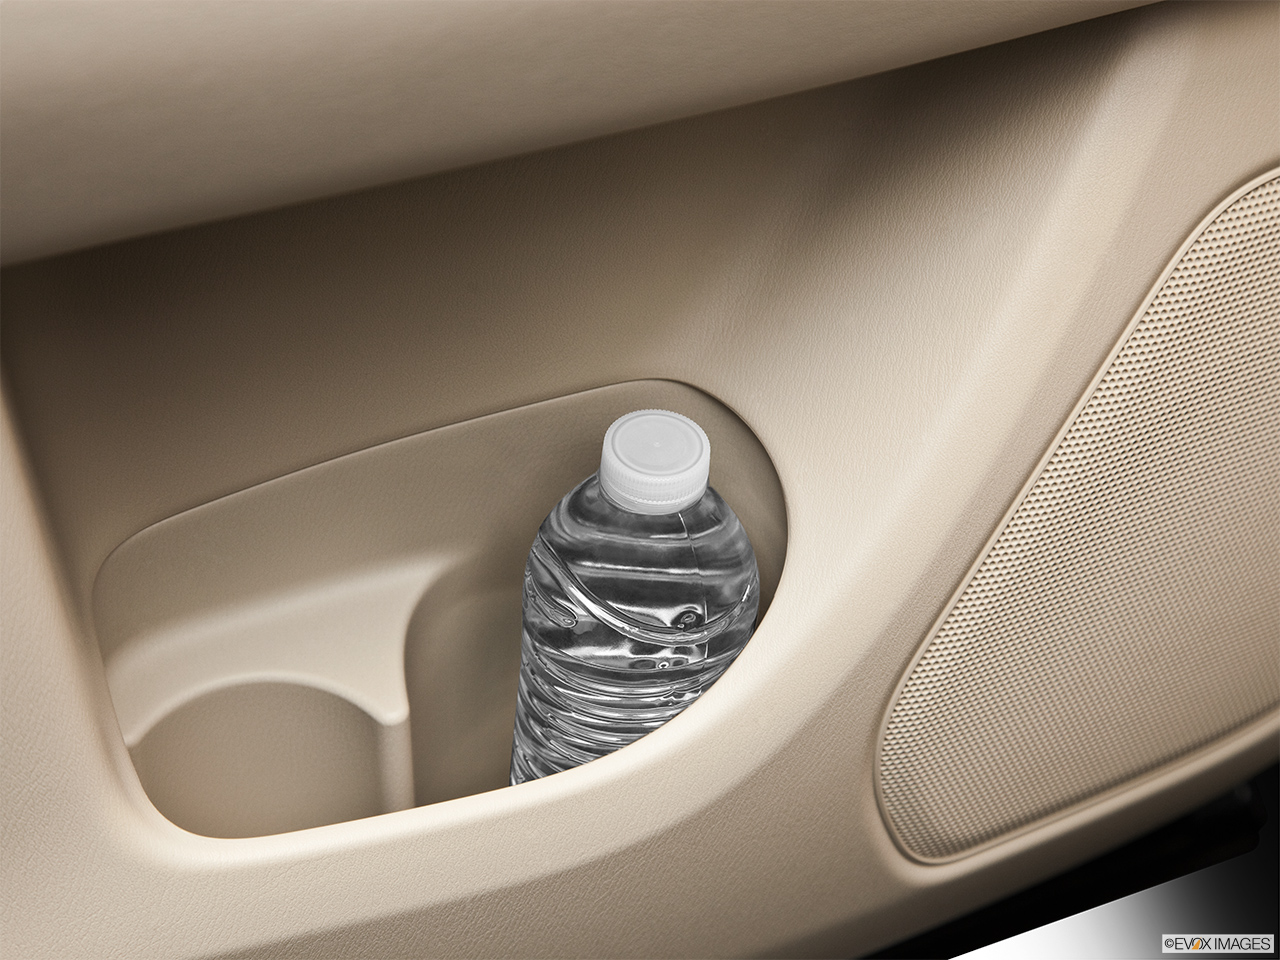 2013 Infiniti JX JX35 Second row side cup holder with coffee prop, or second row door cup holder with water bottle.